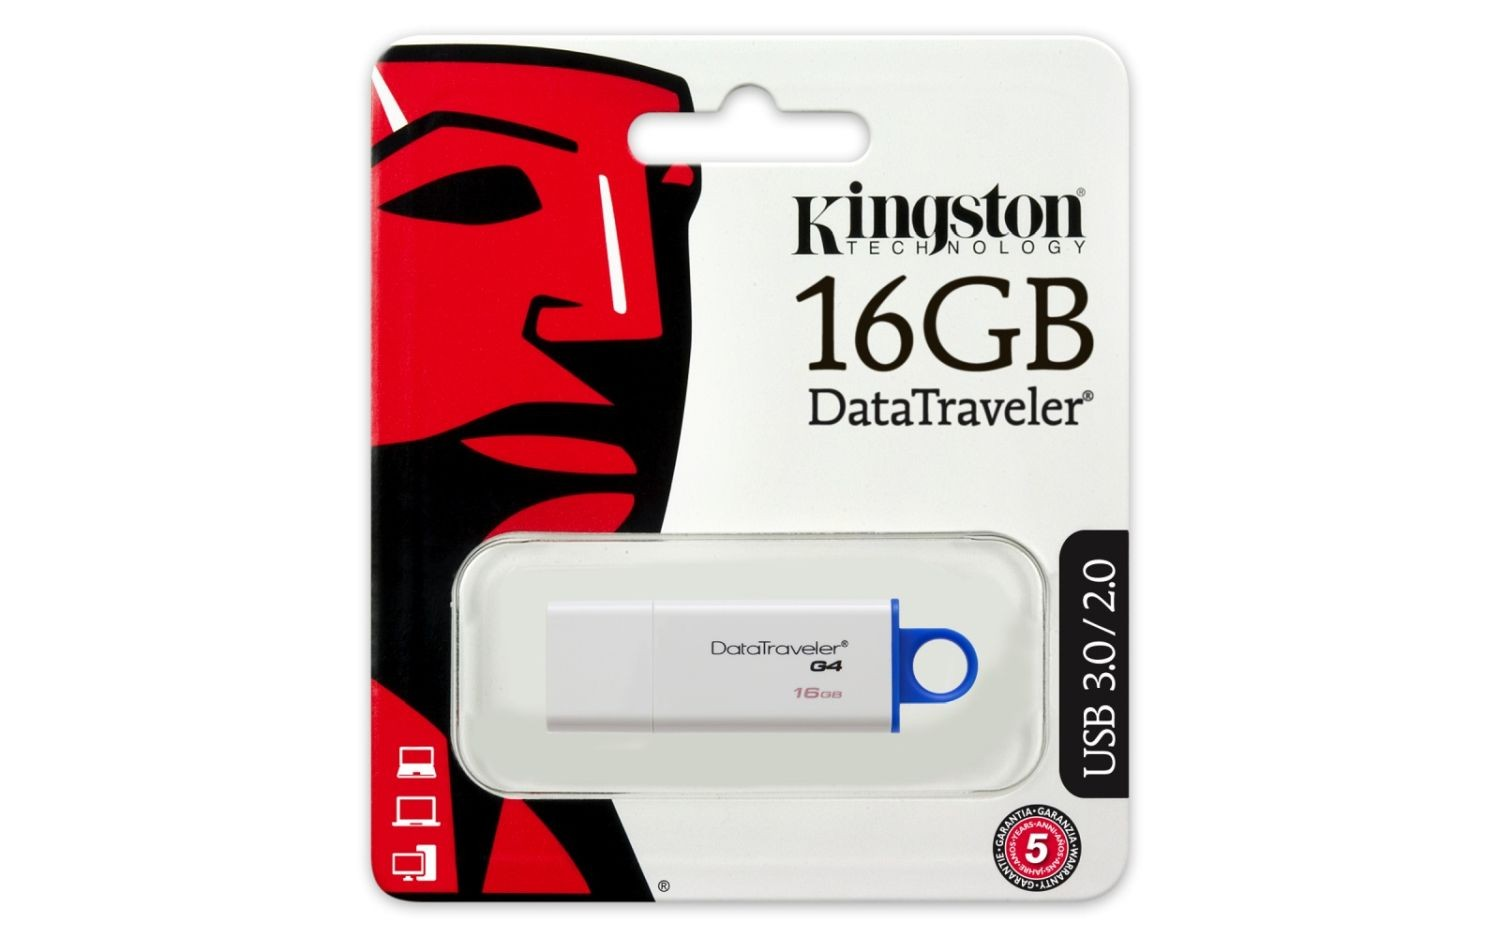 Kingston pamięć USB 16GB DataTraveler I G4 - Blue